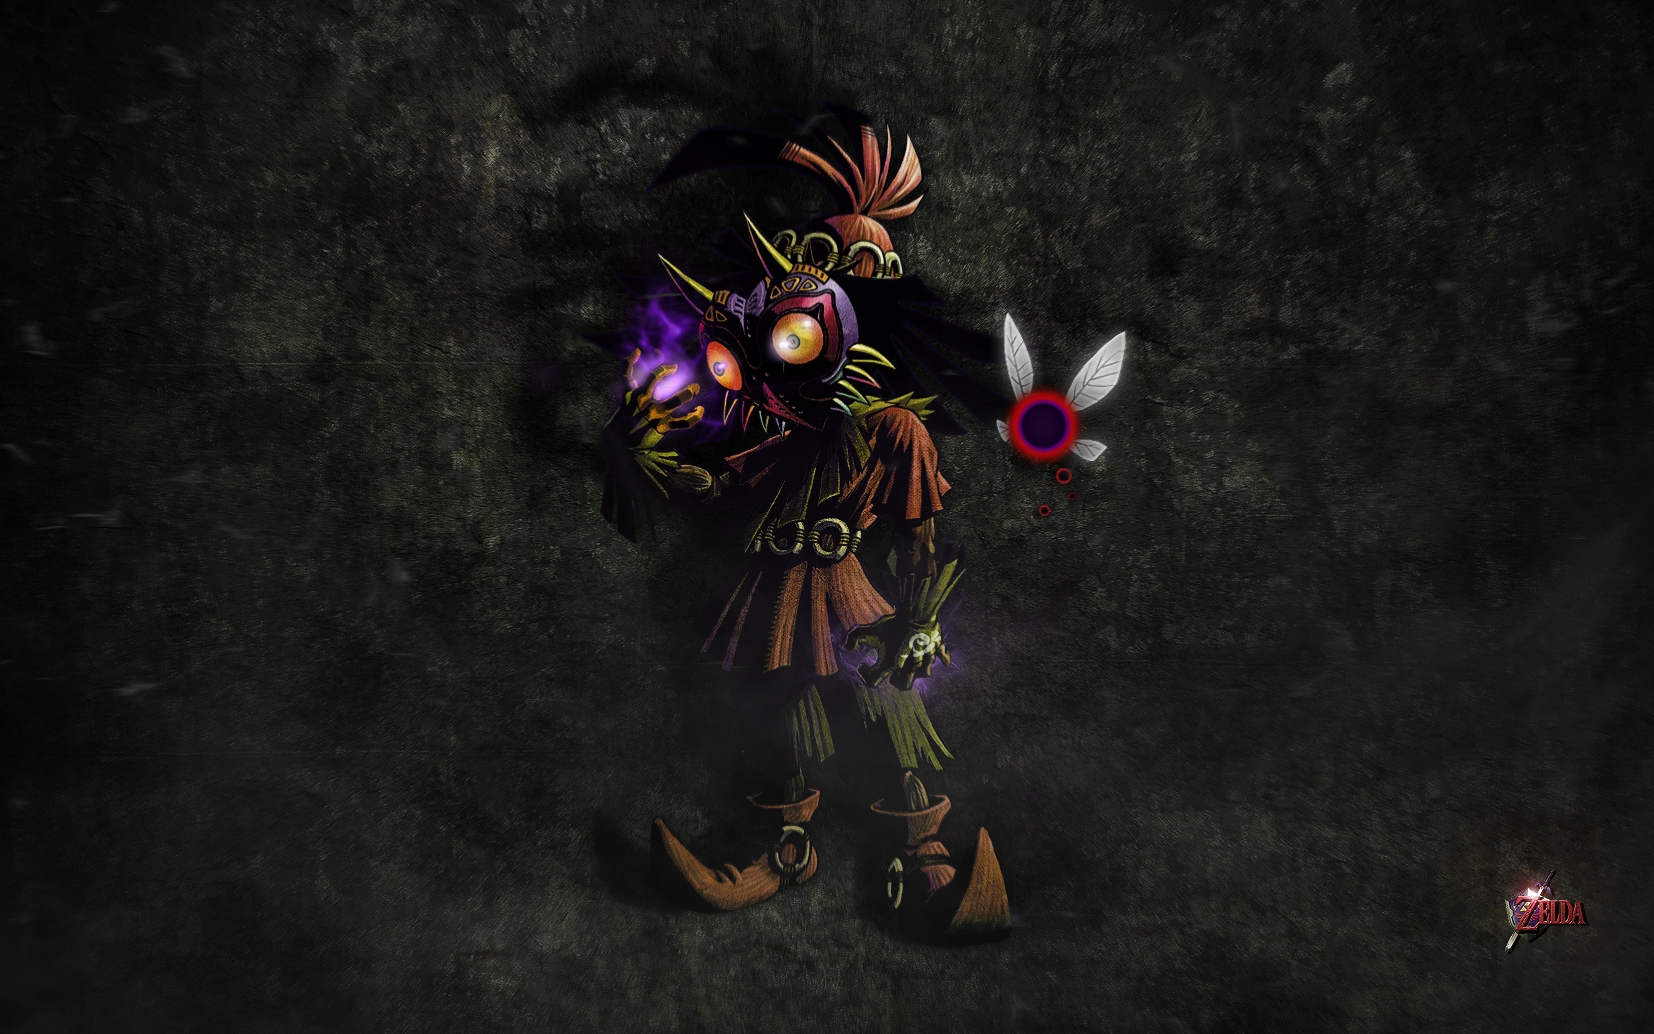 Skull Kid Wallpaper: What Is This? Wallpaper And Background Image